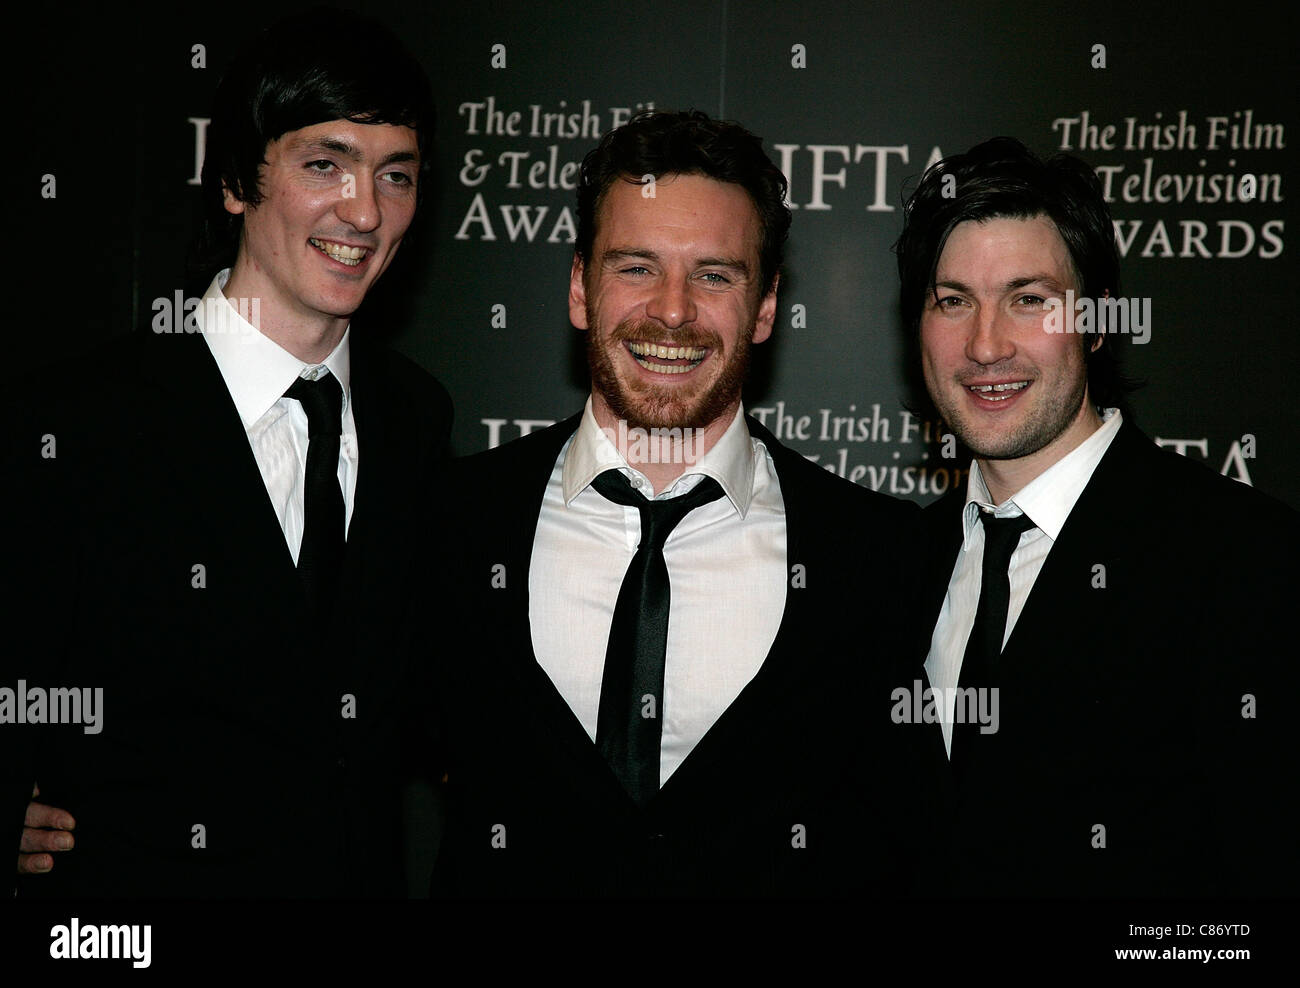 DUBLIN, IRELAND - FEBRUARY 14: Liam McMahon, Michael Fassbender and Brian Milligan arrive at the 6th Annual Irish Stock Photo